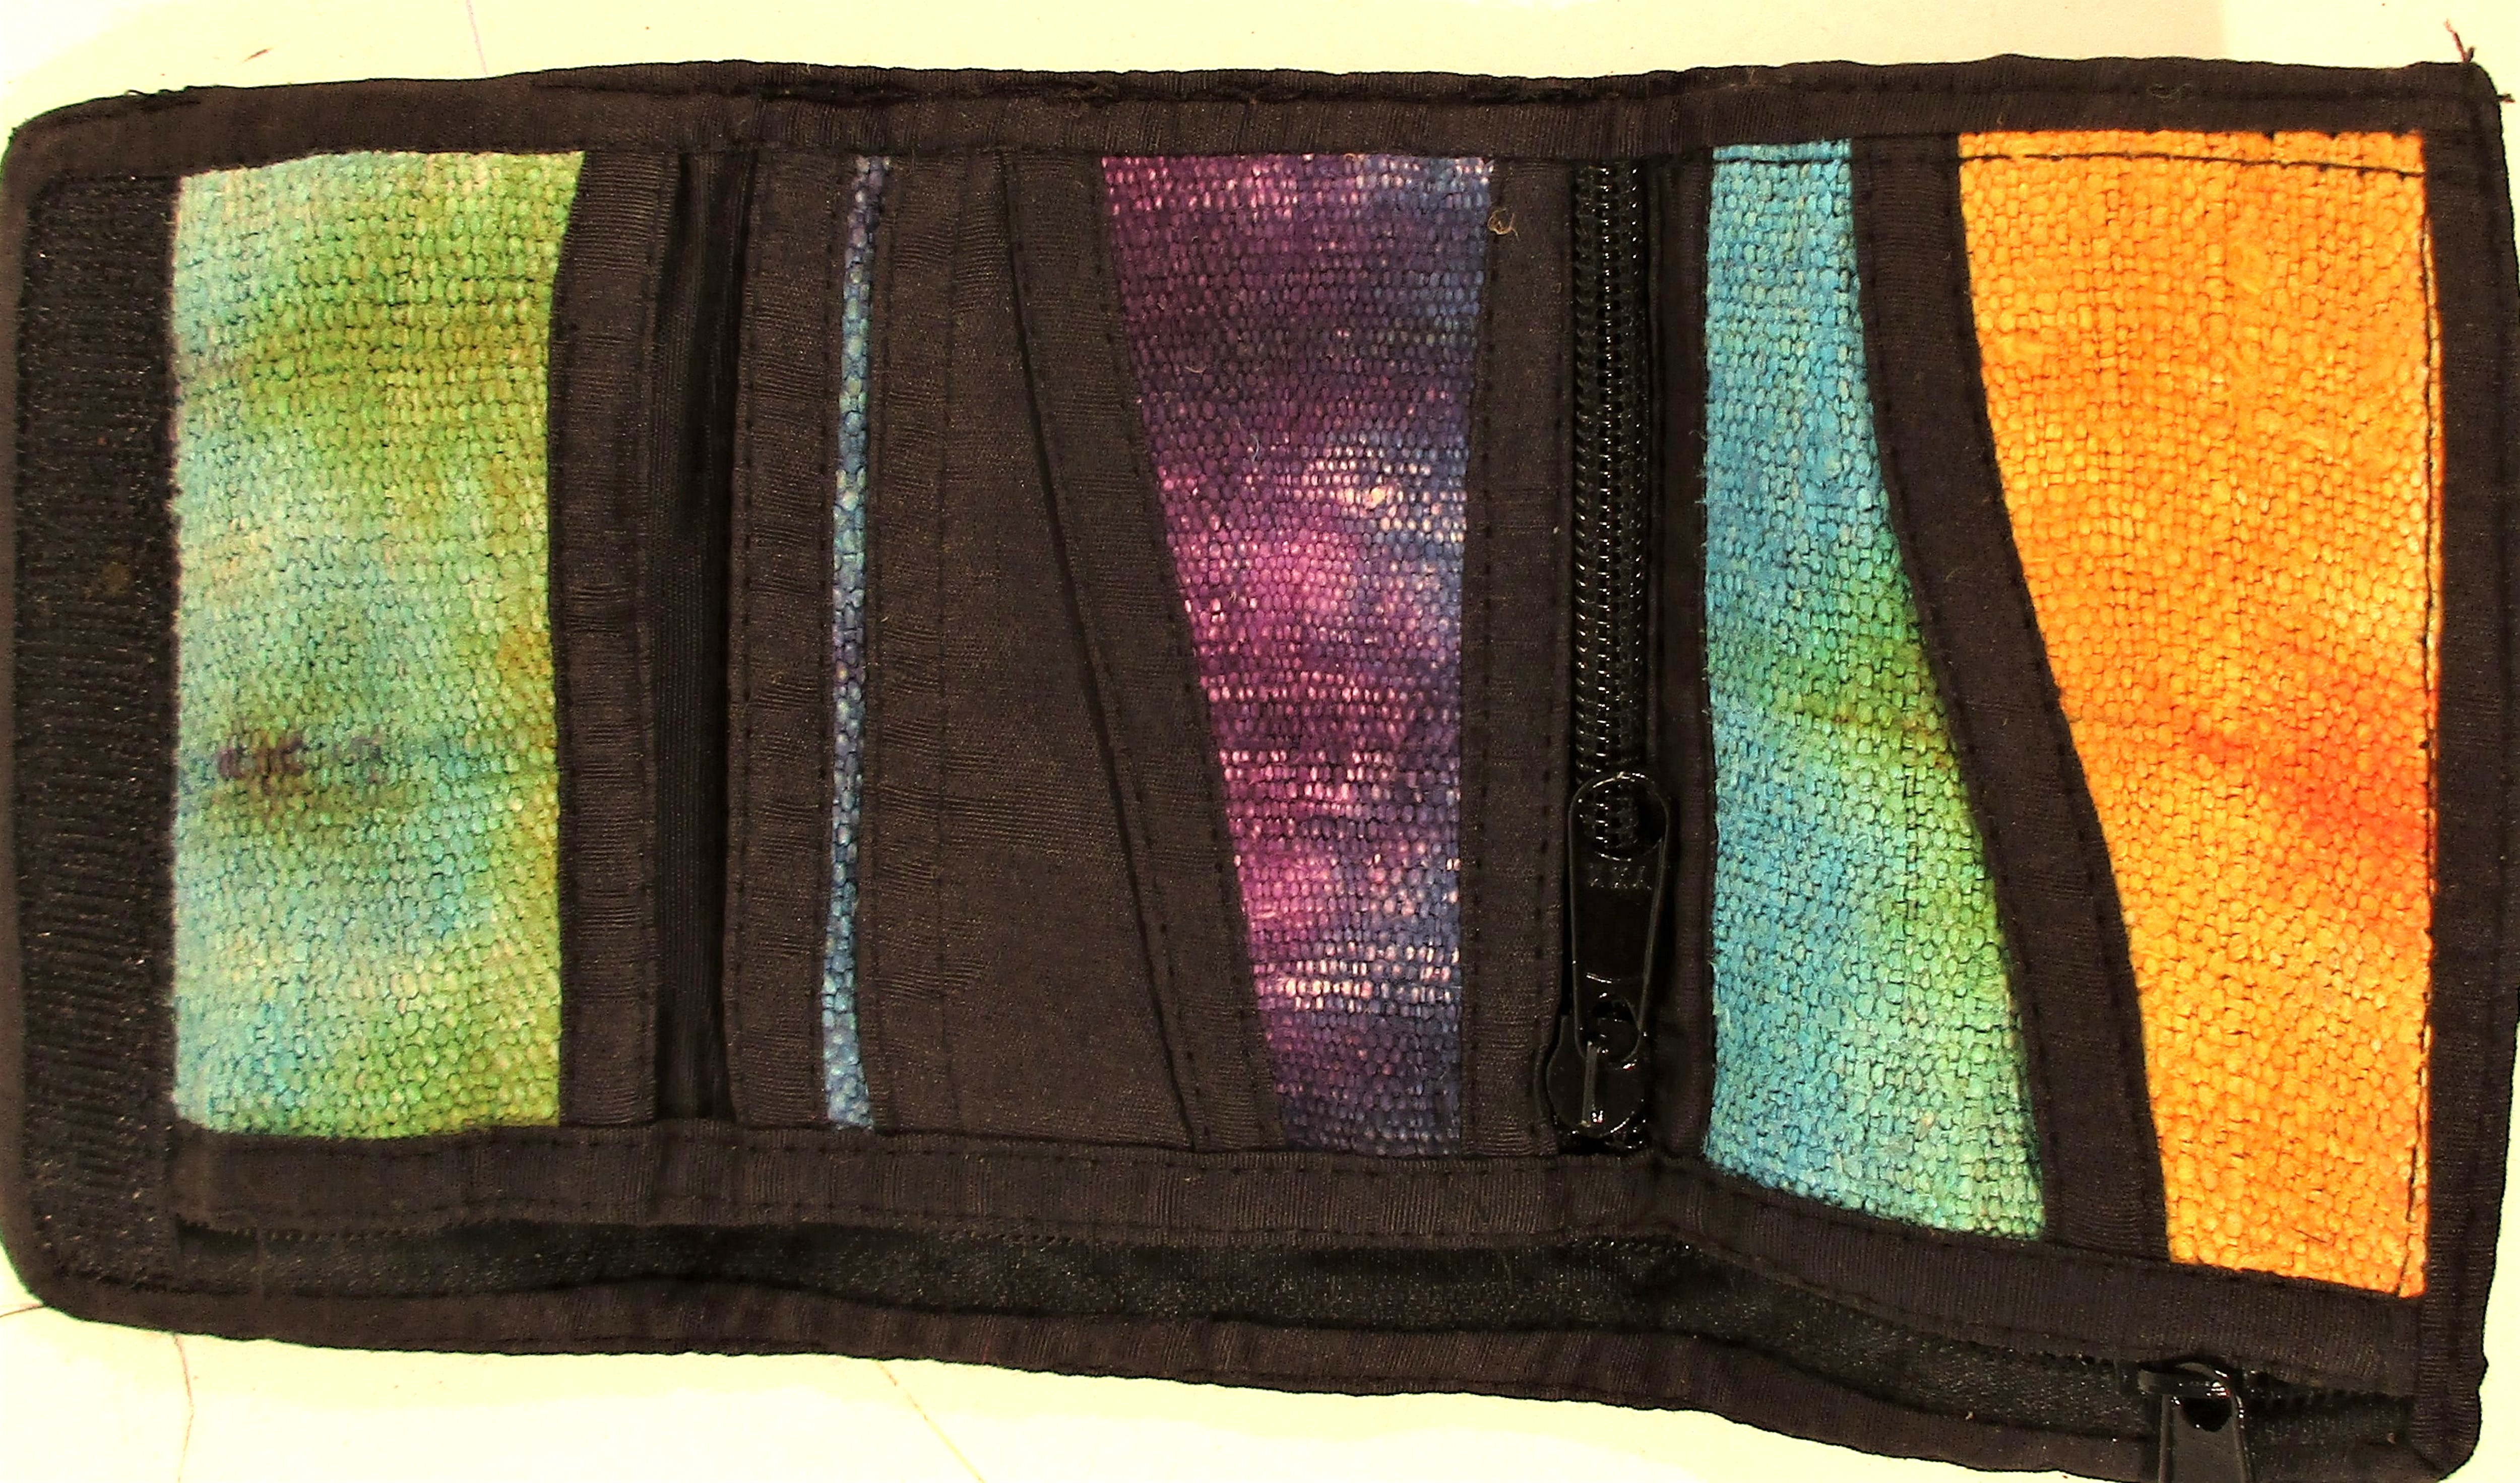 Kashmir embroidered wallet with multiple pockets. 26 x 13cm. - Image 2 of 2